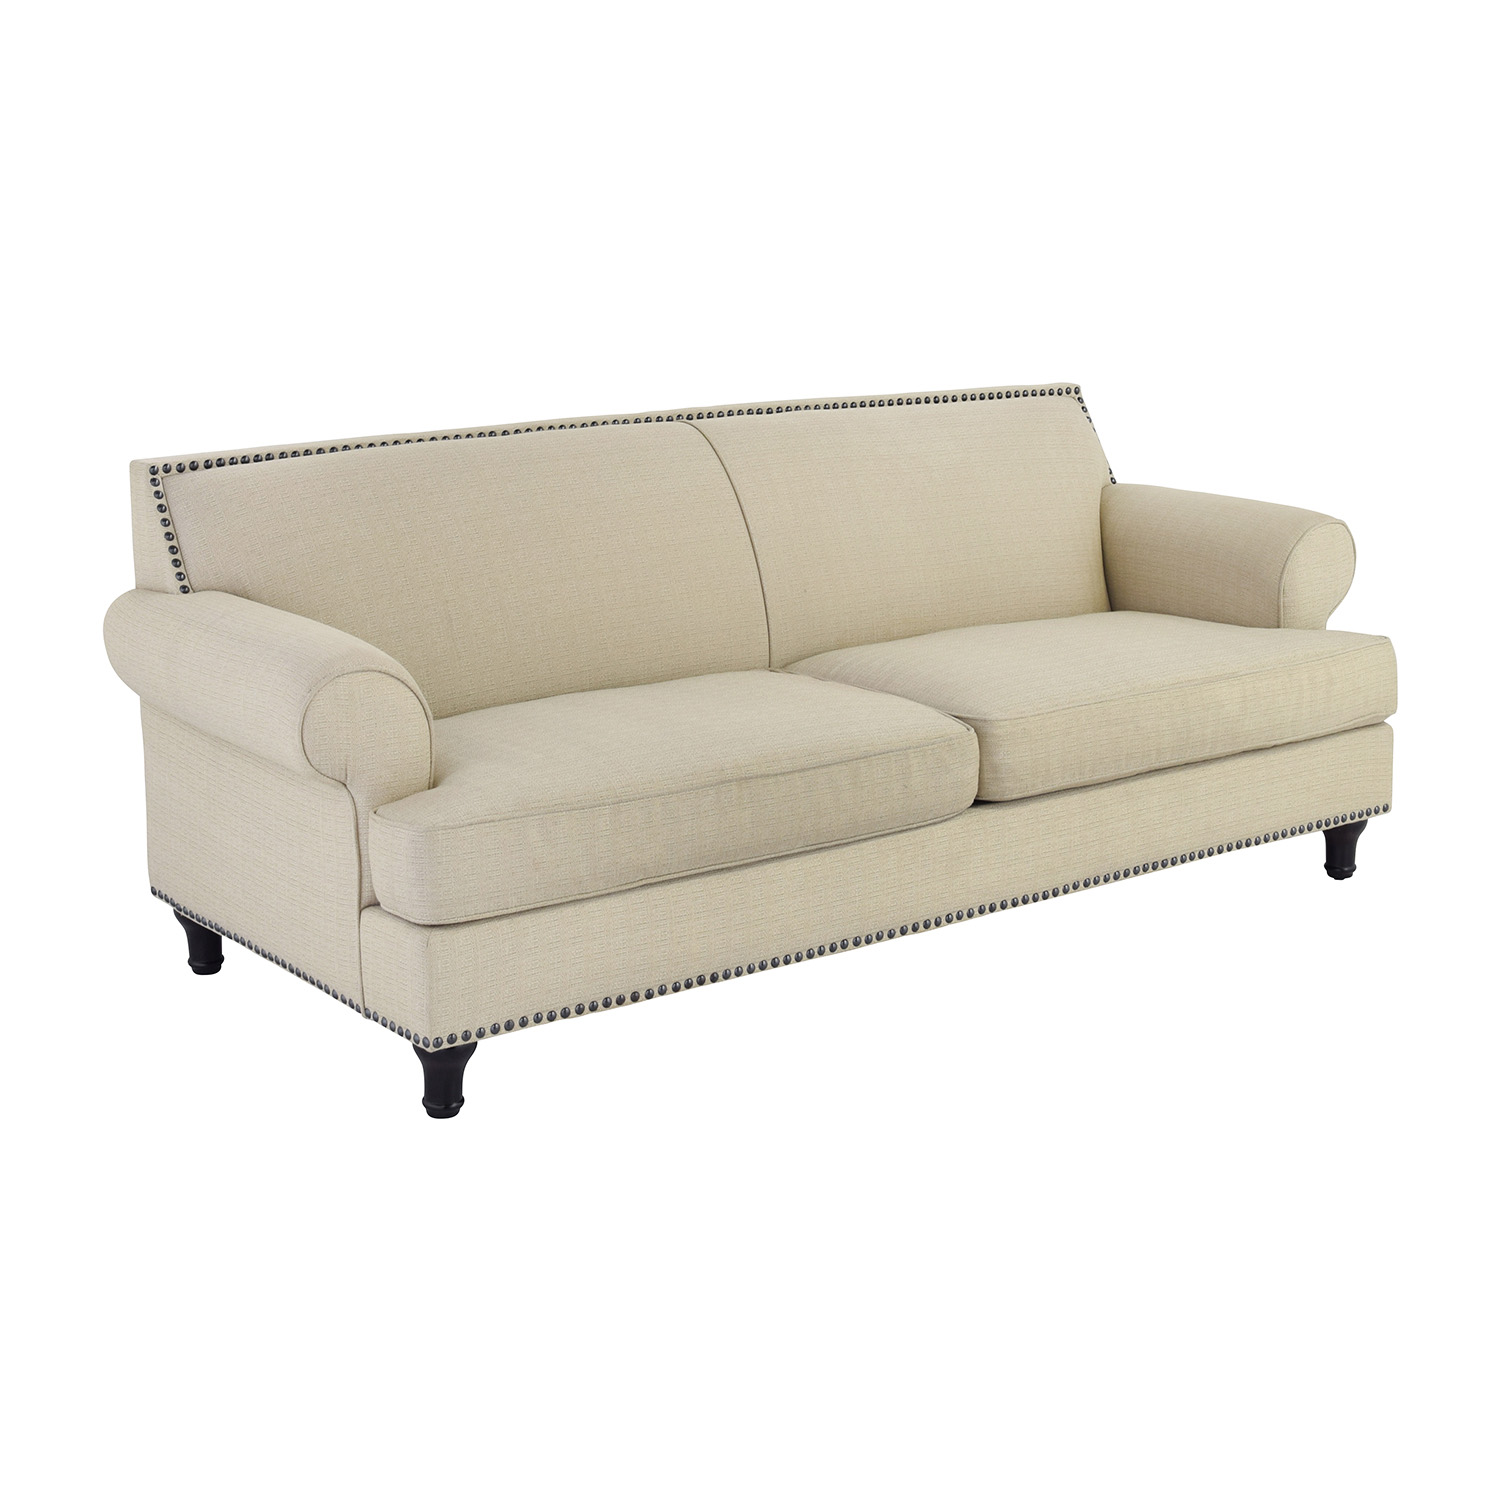 Sofa S 48% Off - Pier 1 Pier 1 Carmen Tan Couch With Studs / Sofas